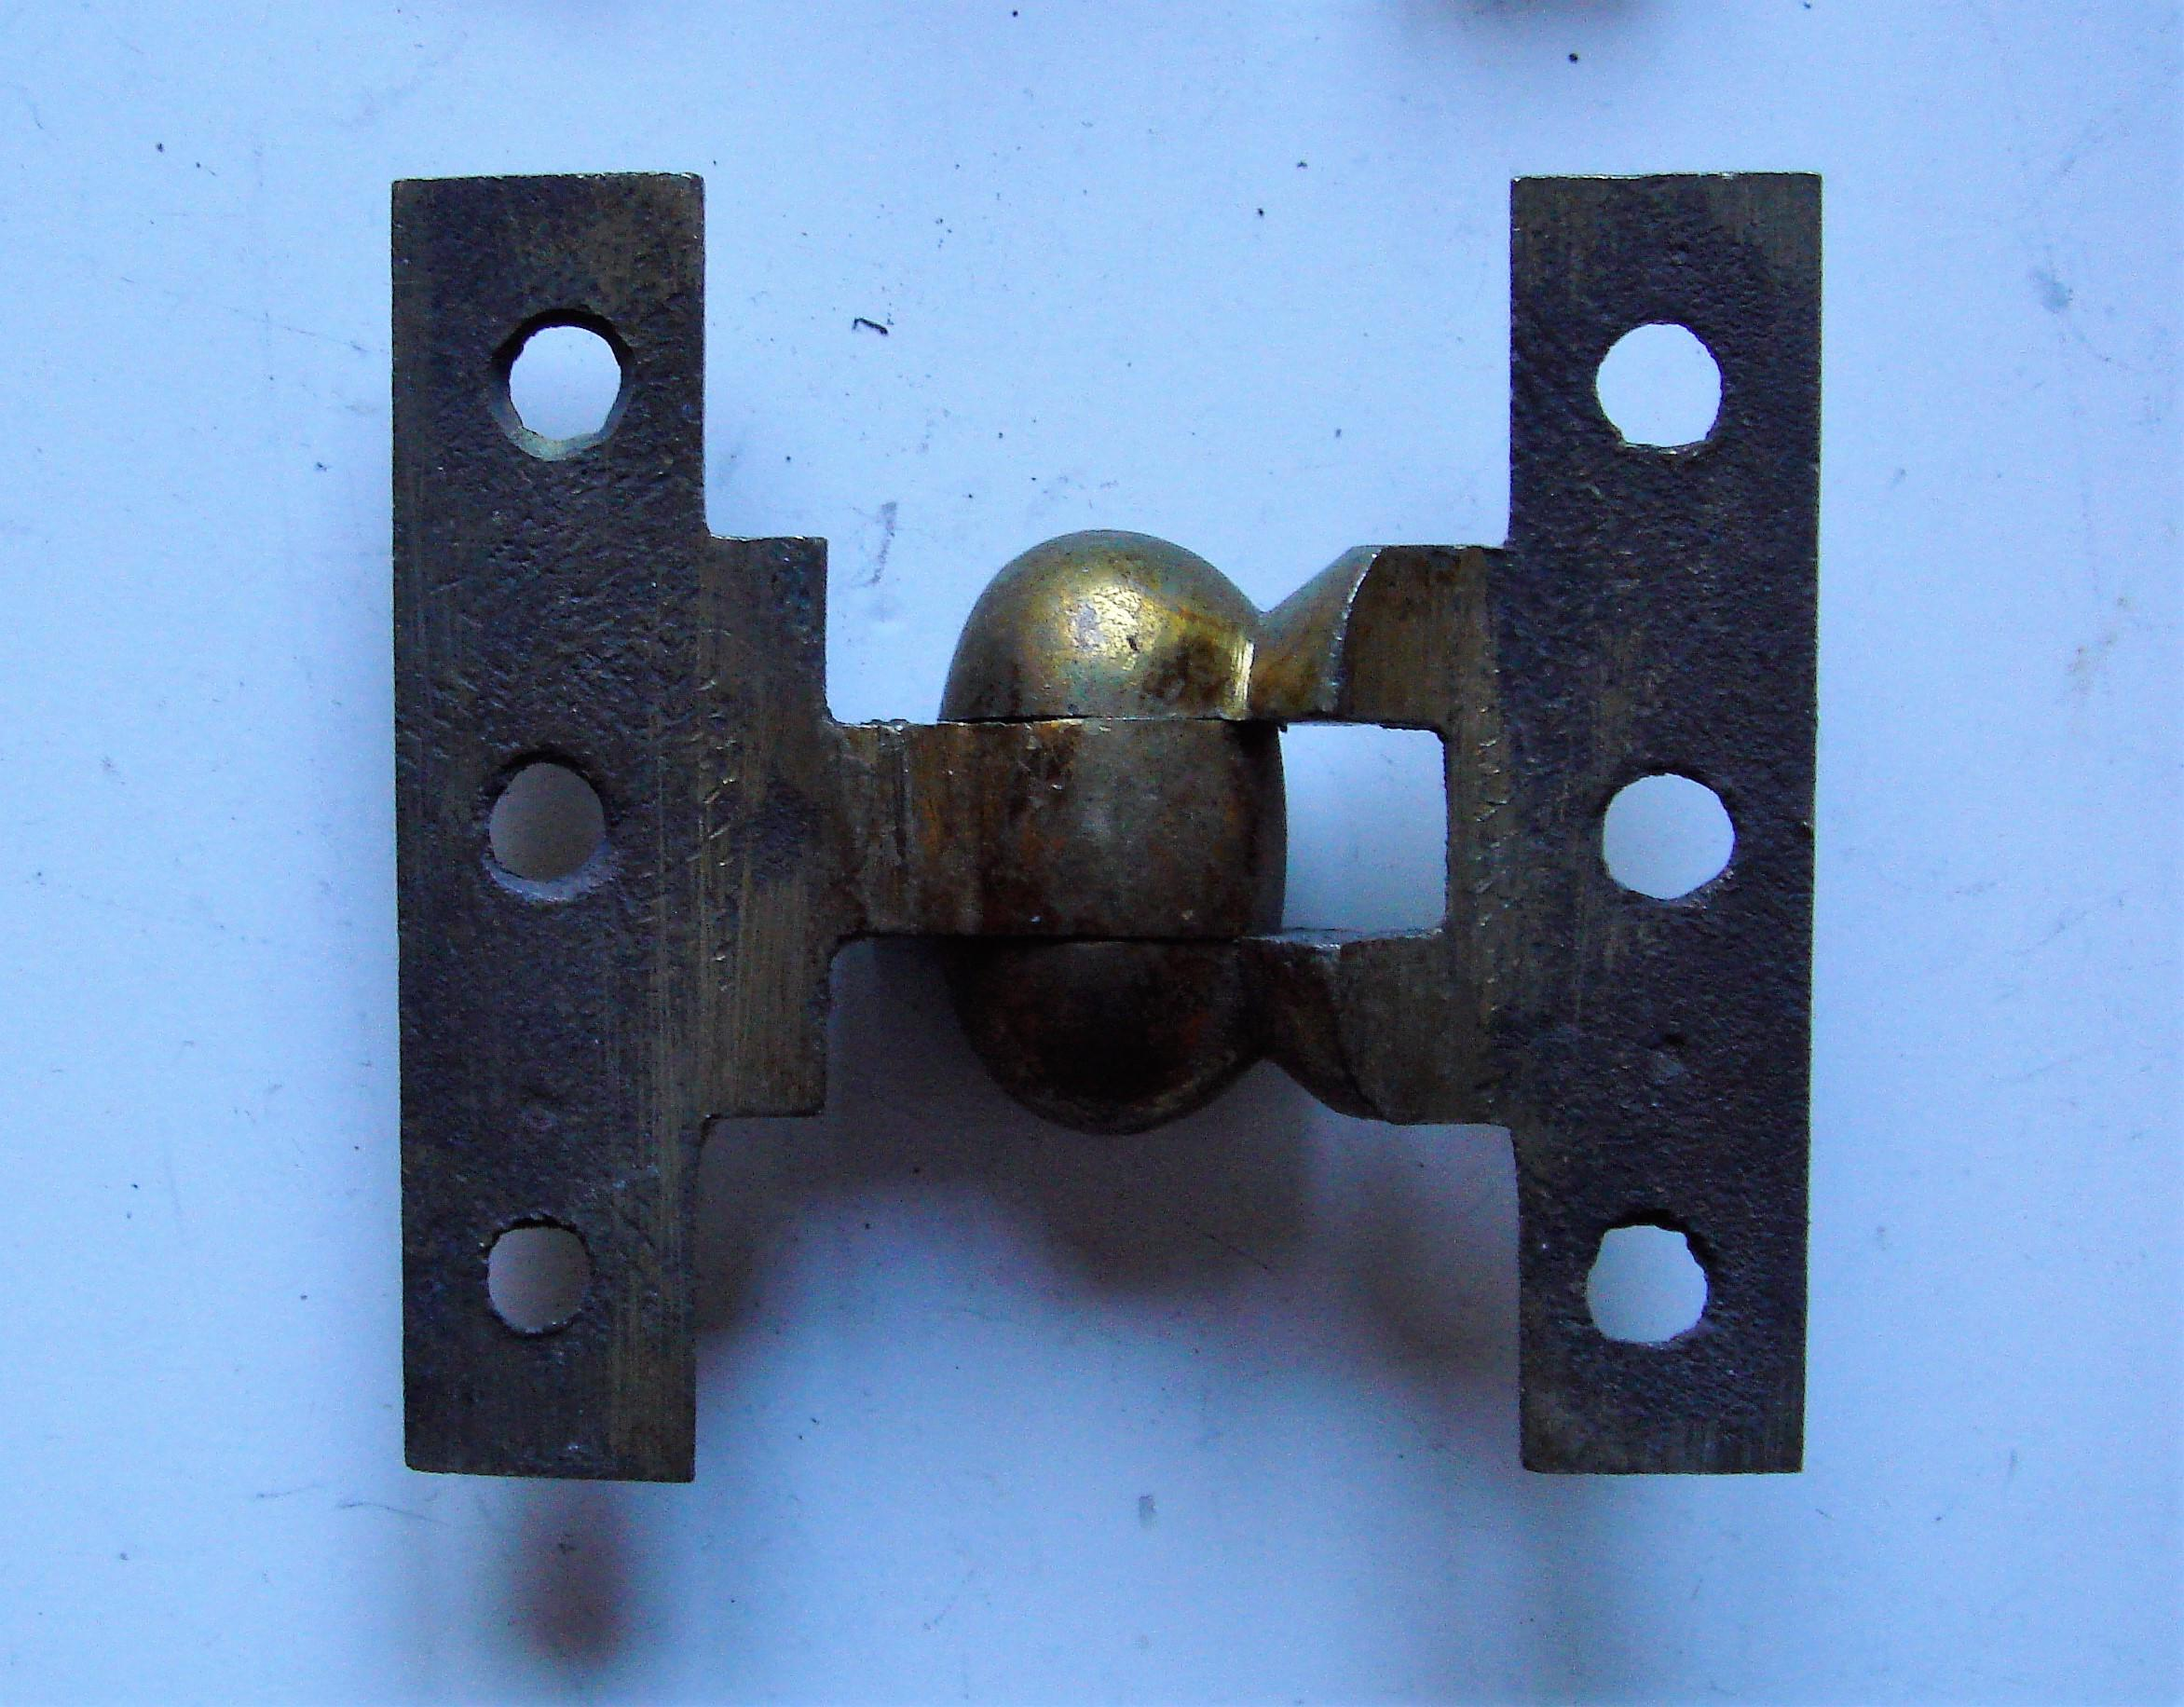 Genuine Antique Brass Cabinet Hinges with Egg Shaped Knuckles